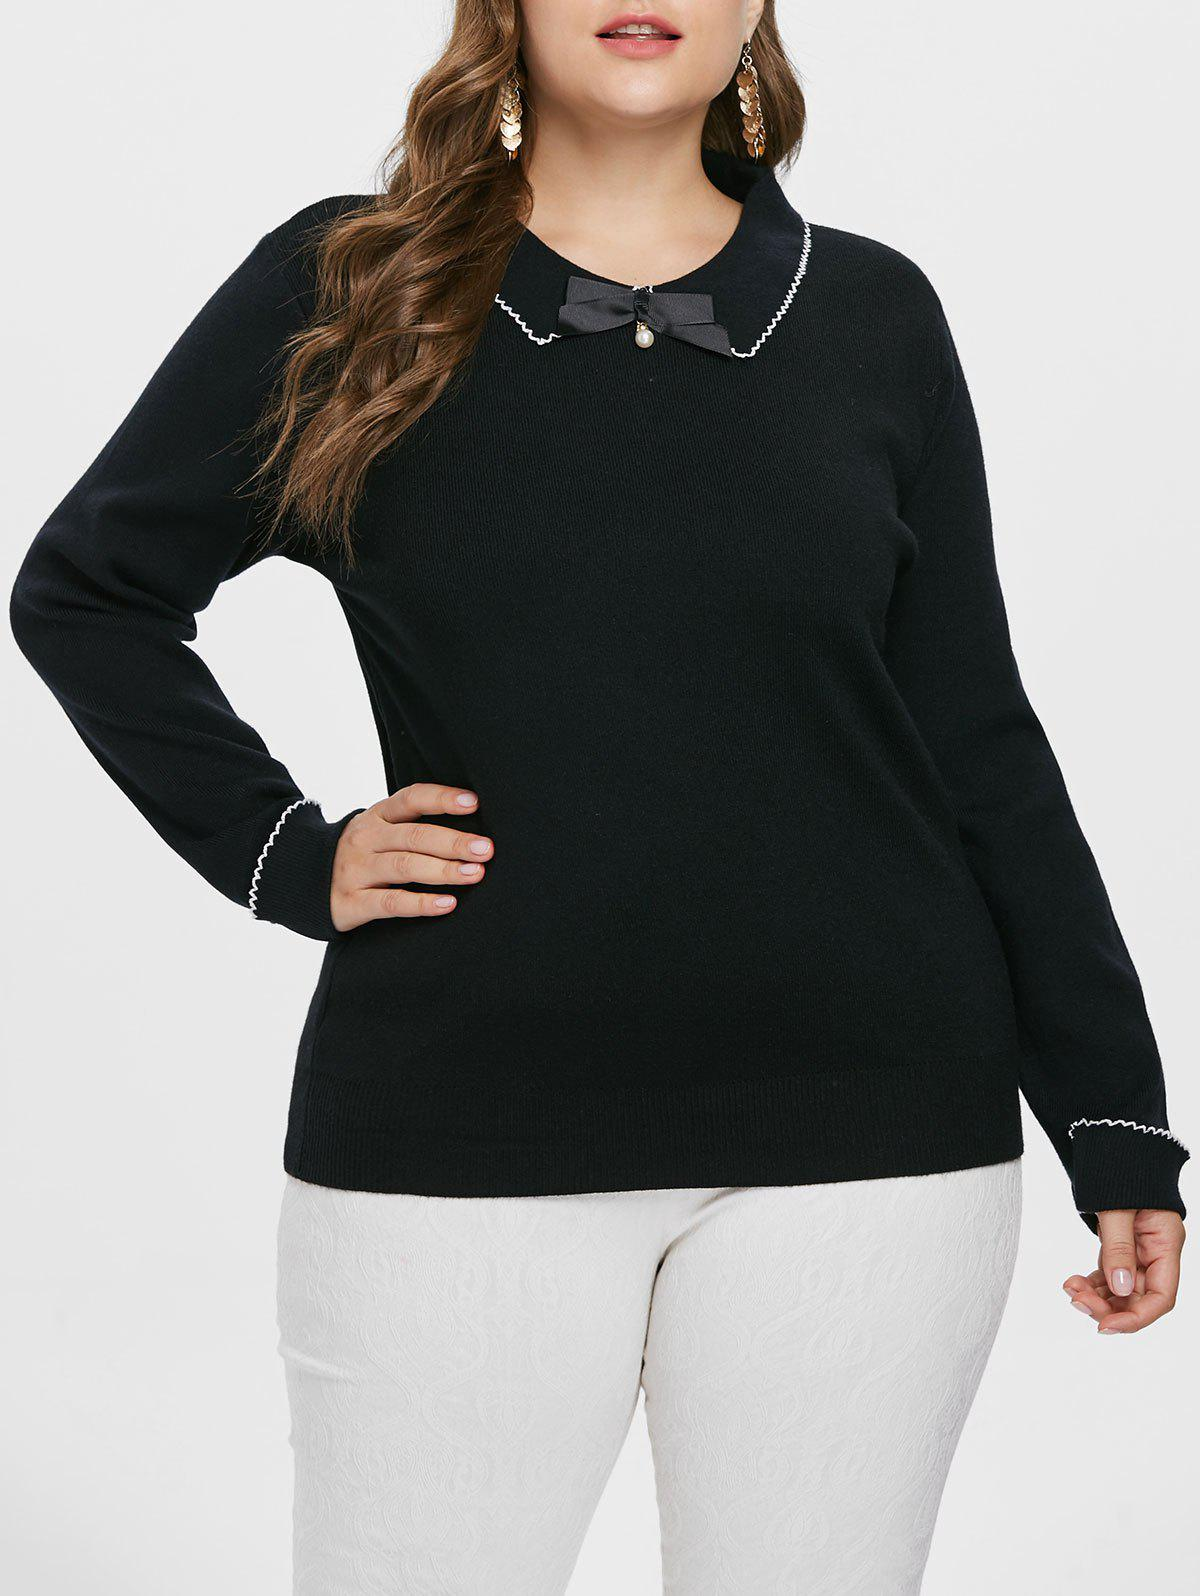 4f13daef8ae 2019 Plus Size Peter Pan Collar Sweater